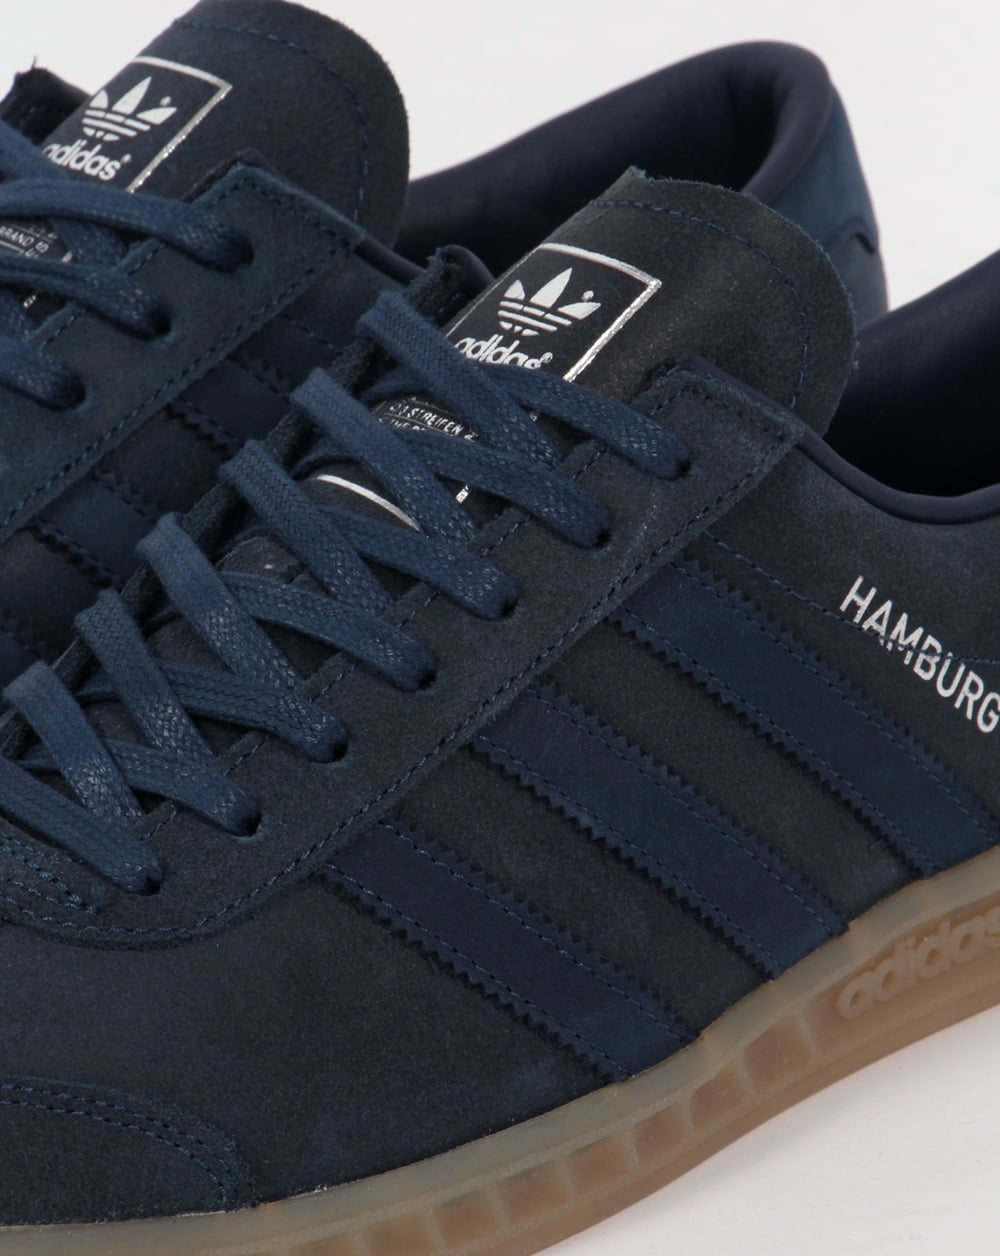 Adidas Originals Hamburg Tech Trainer Dunkelblau und Gum